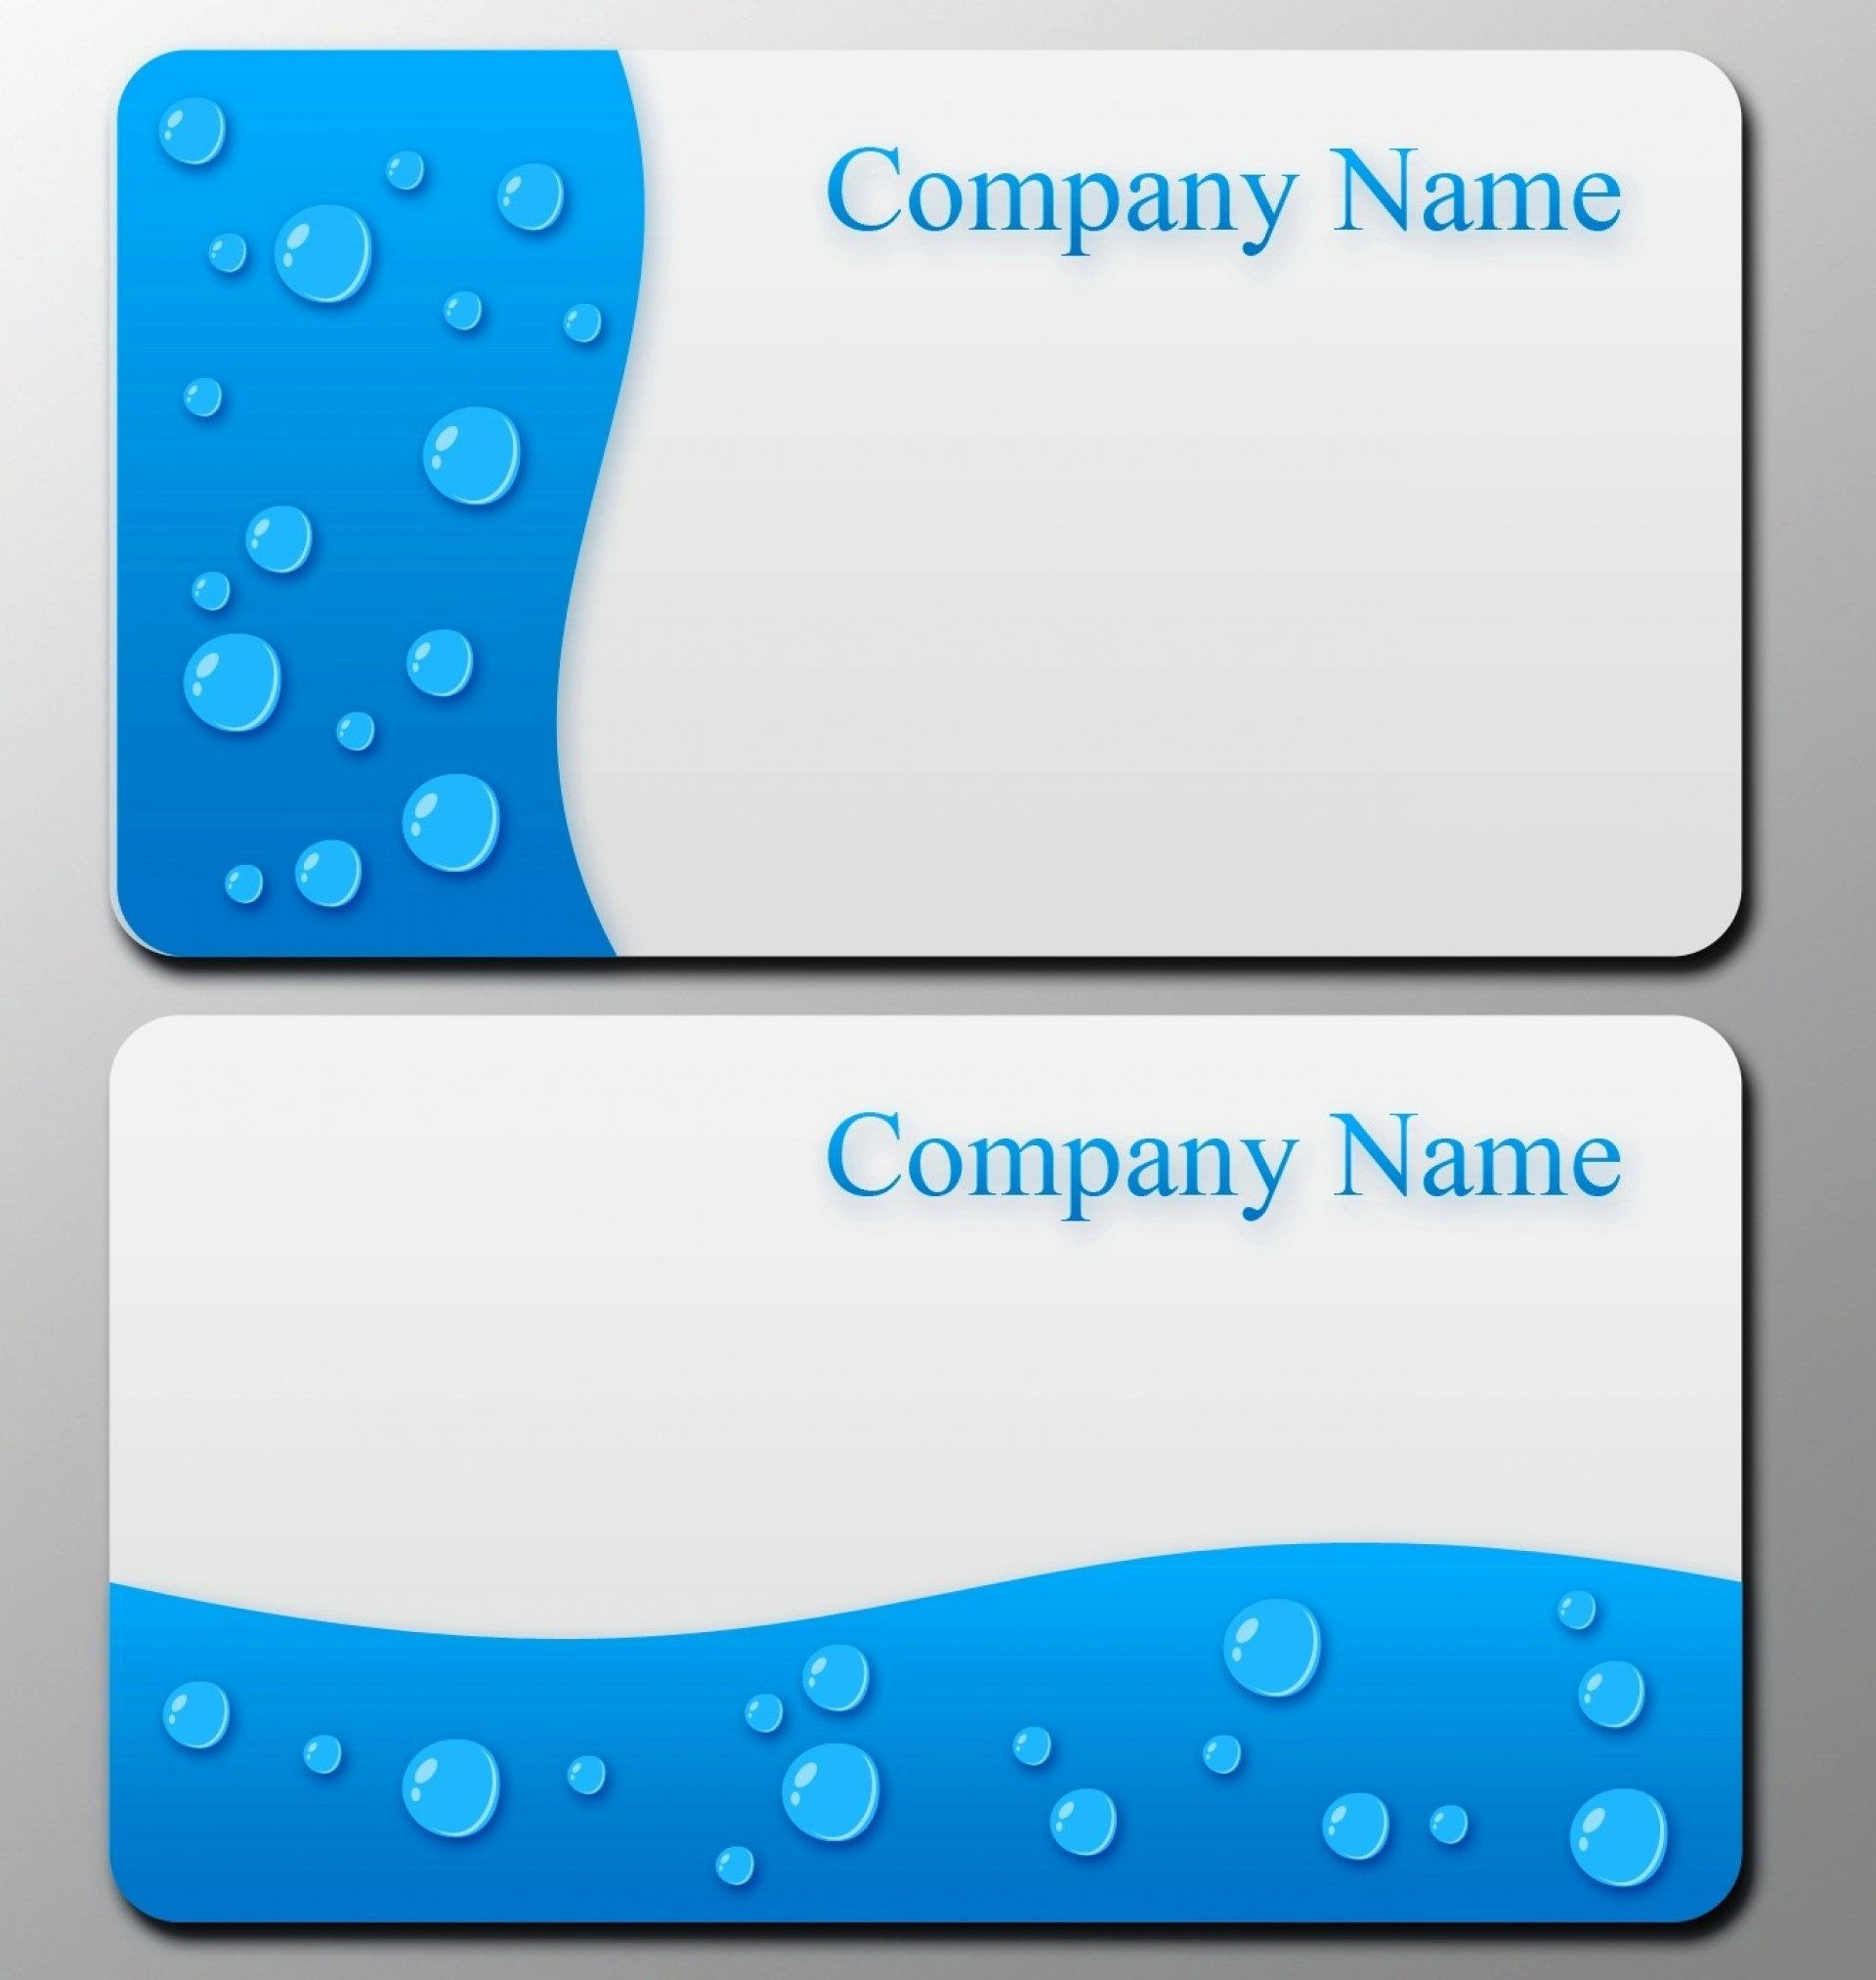 008 Astounding Blank Busines Card Template Photoshop Image  Free Download Psd1920